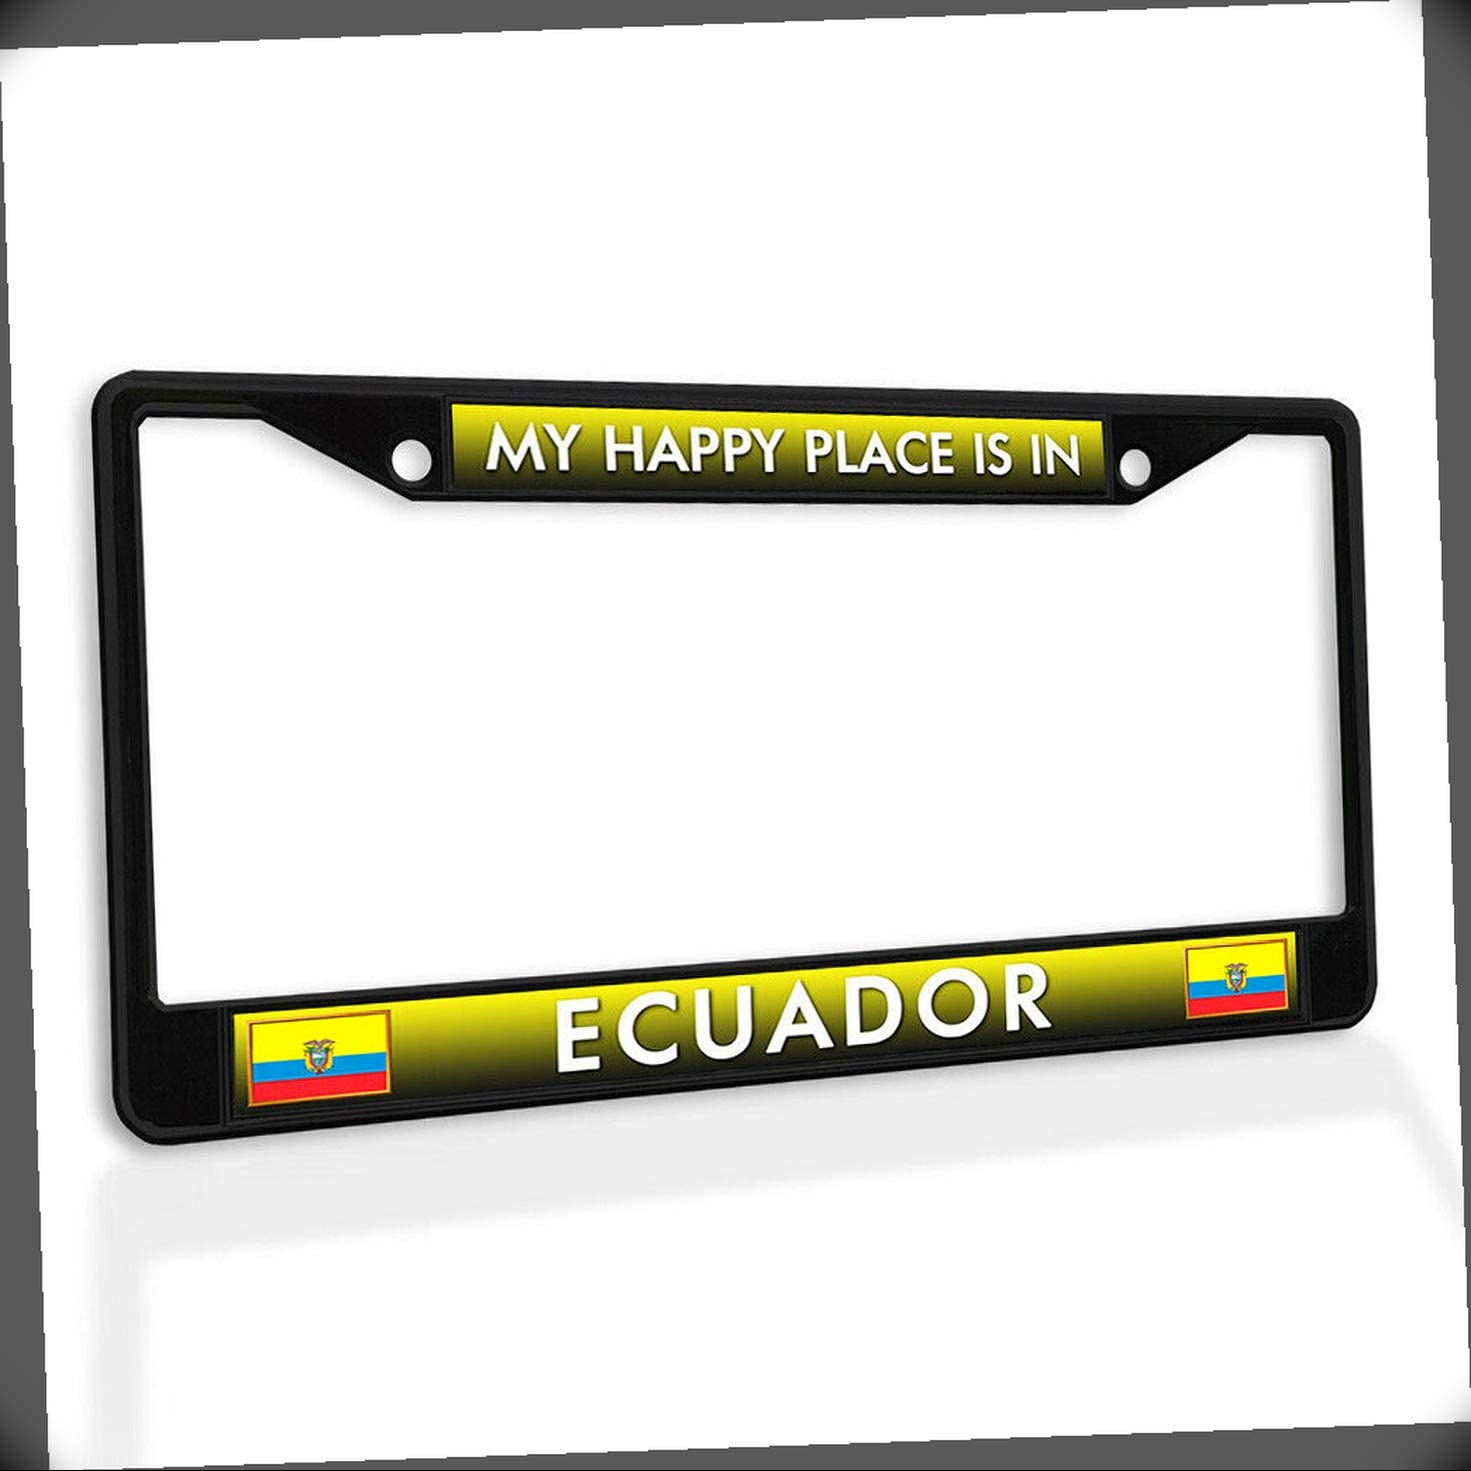 New License Plate Frame My Outlet ☆ Free Shipping Happy Place Ecuador in Car Metal is Daily bargain sale I